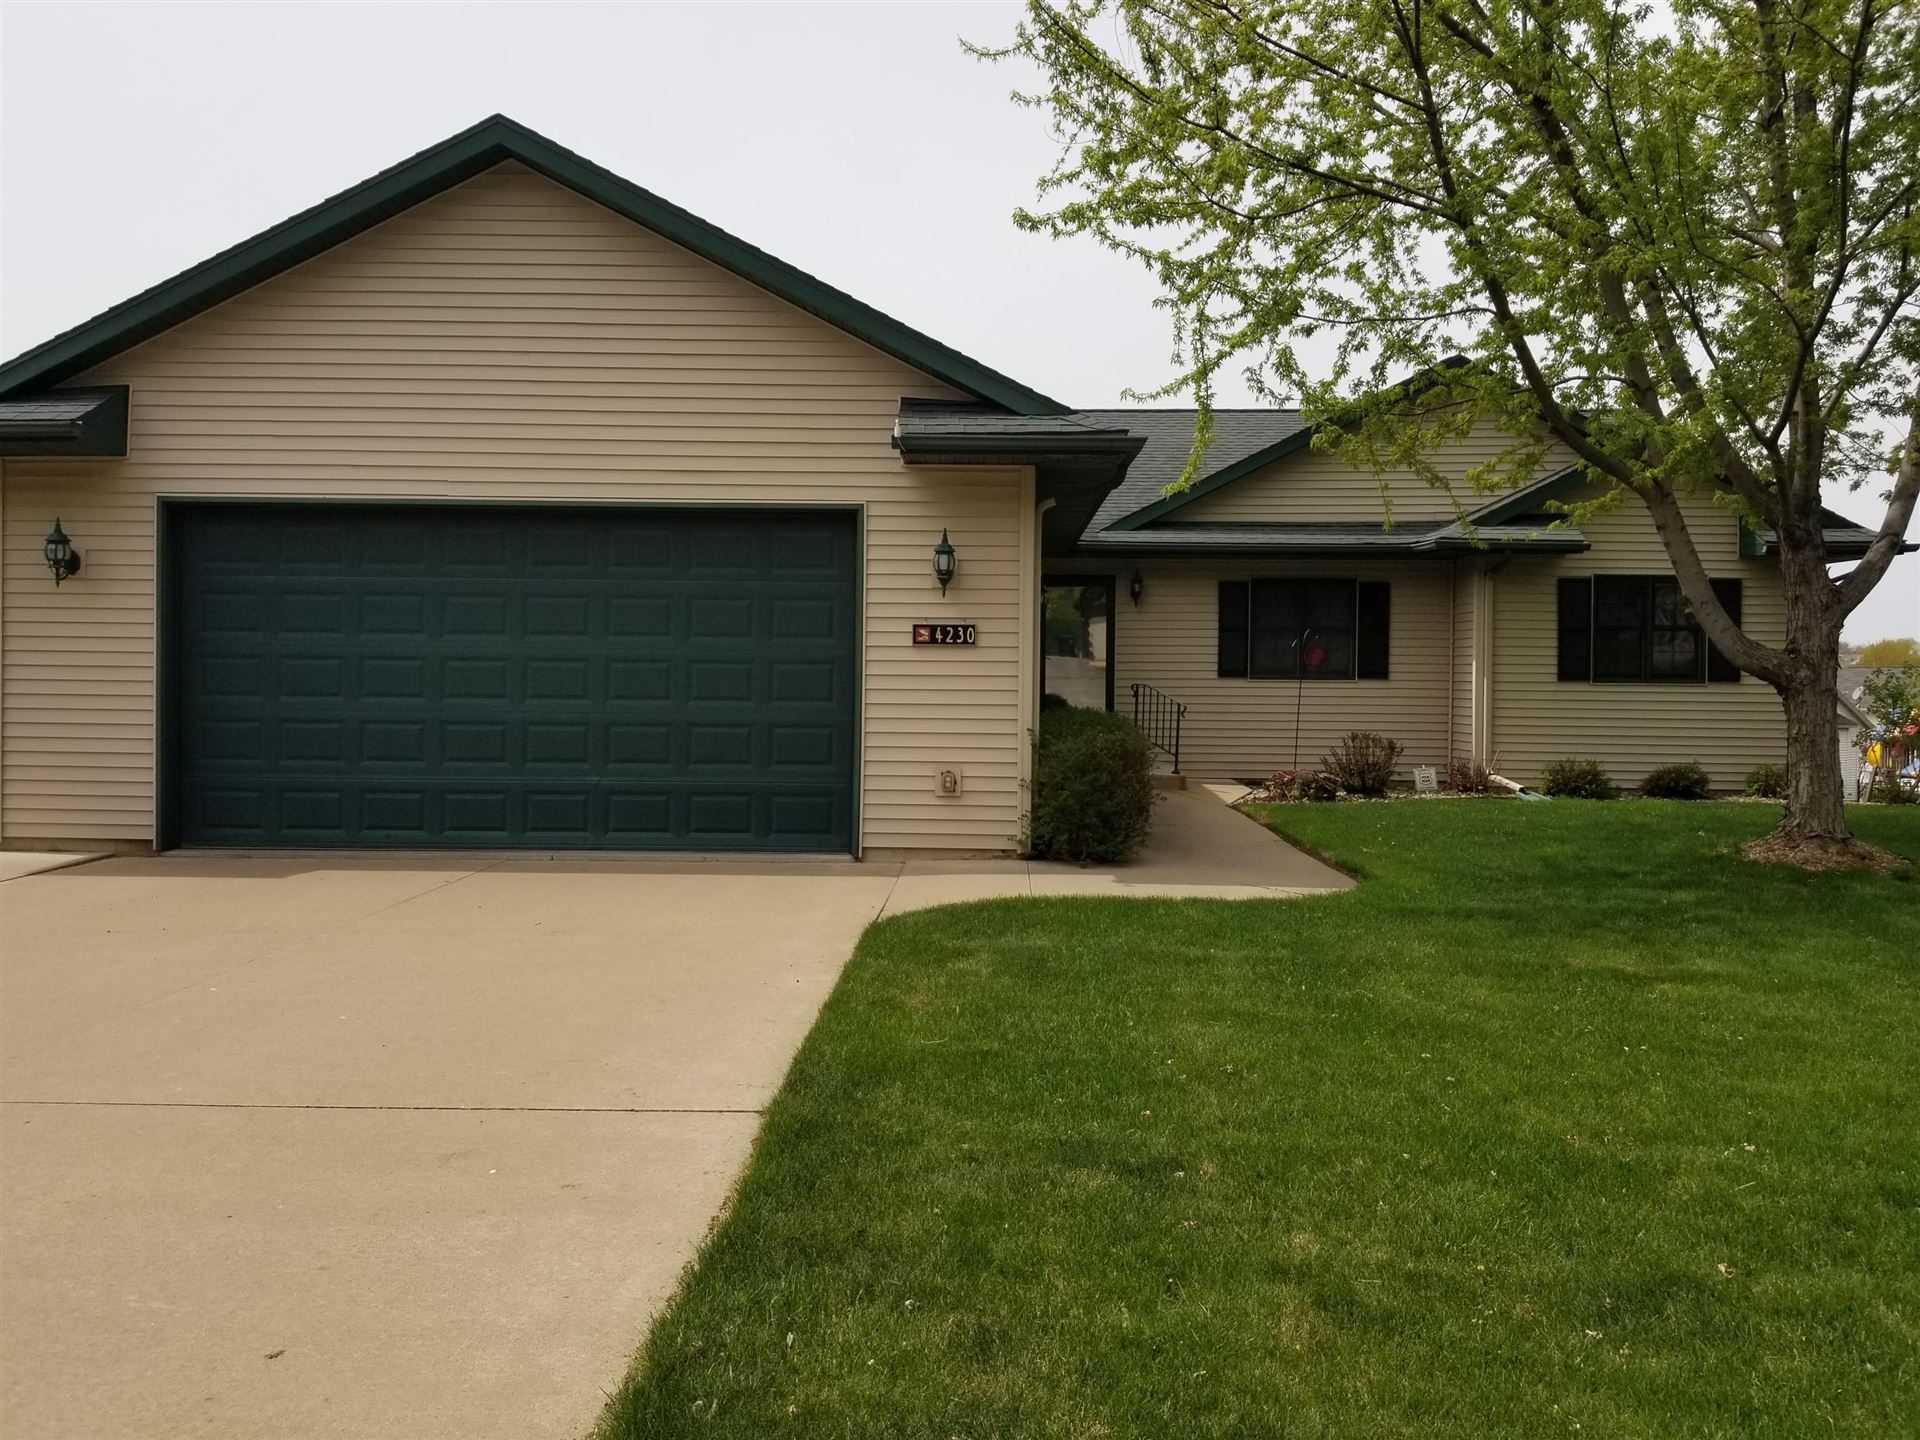 4230 Cliffside Dr, La Crosse, WI 54601 - MLS#: 1687105